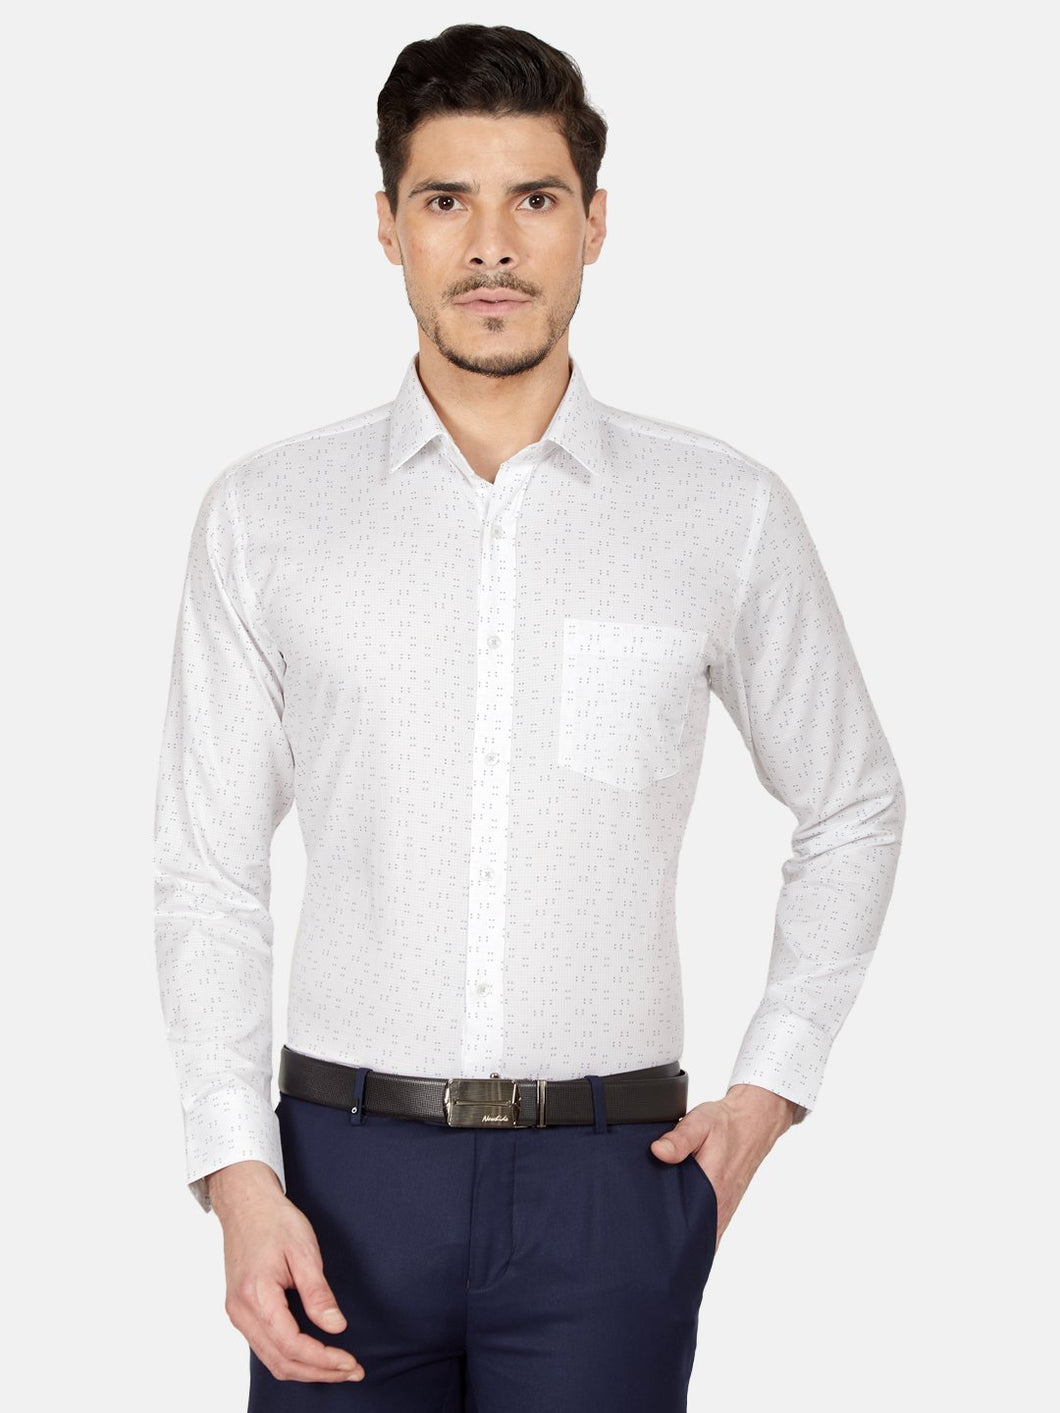 Men's Slim-fit Printed Formal Shirt-OPSL6630FWhite